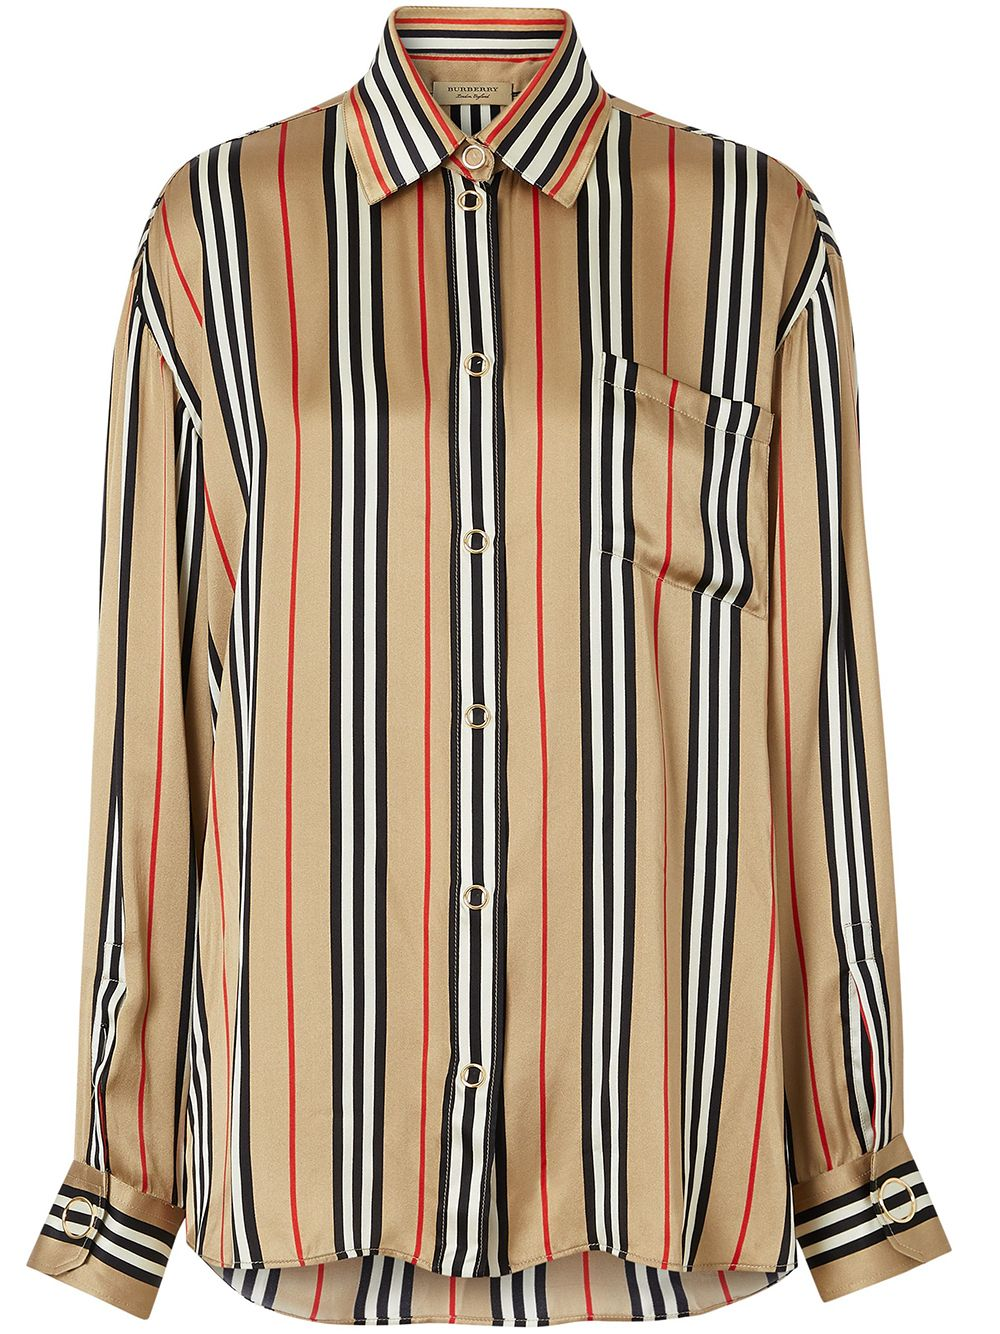 Burberry Icon oversized shirt - Brown von Burberry